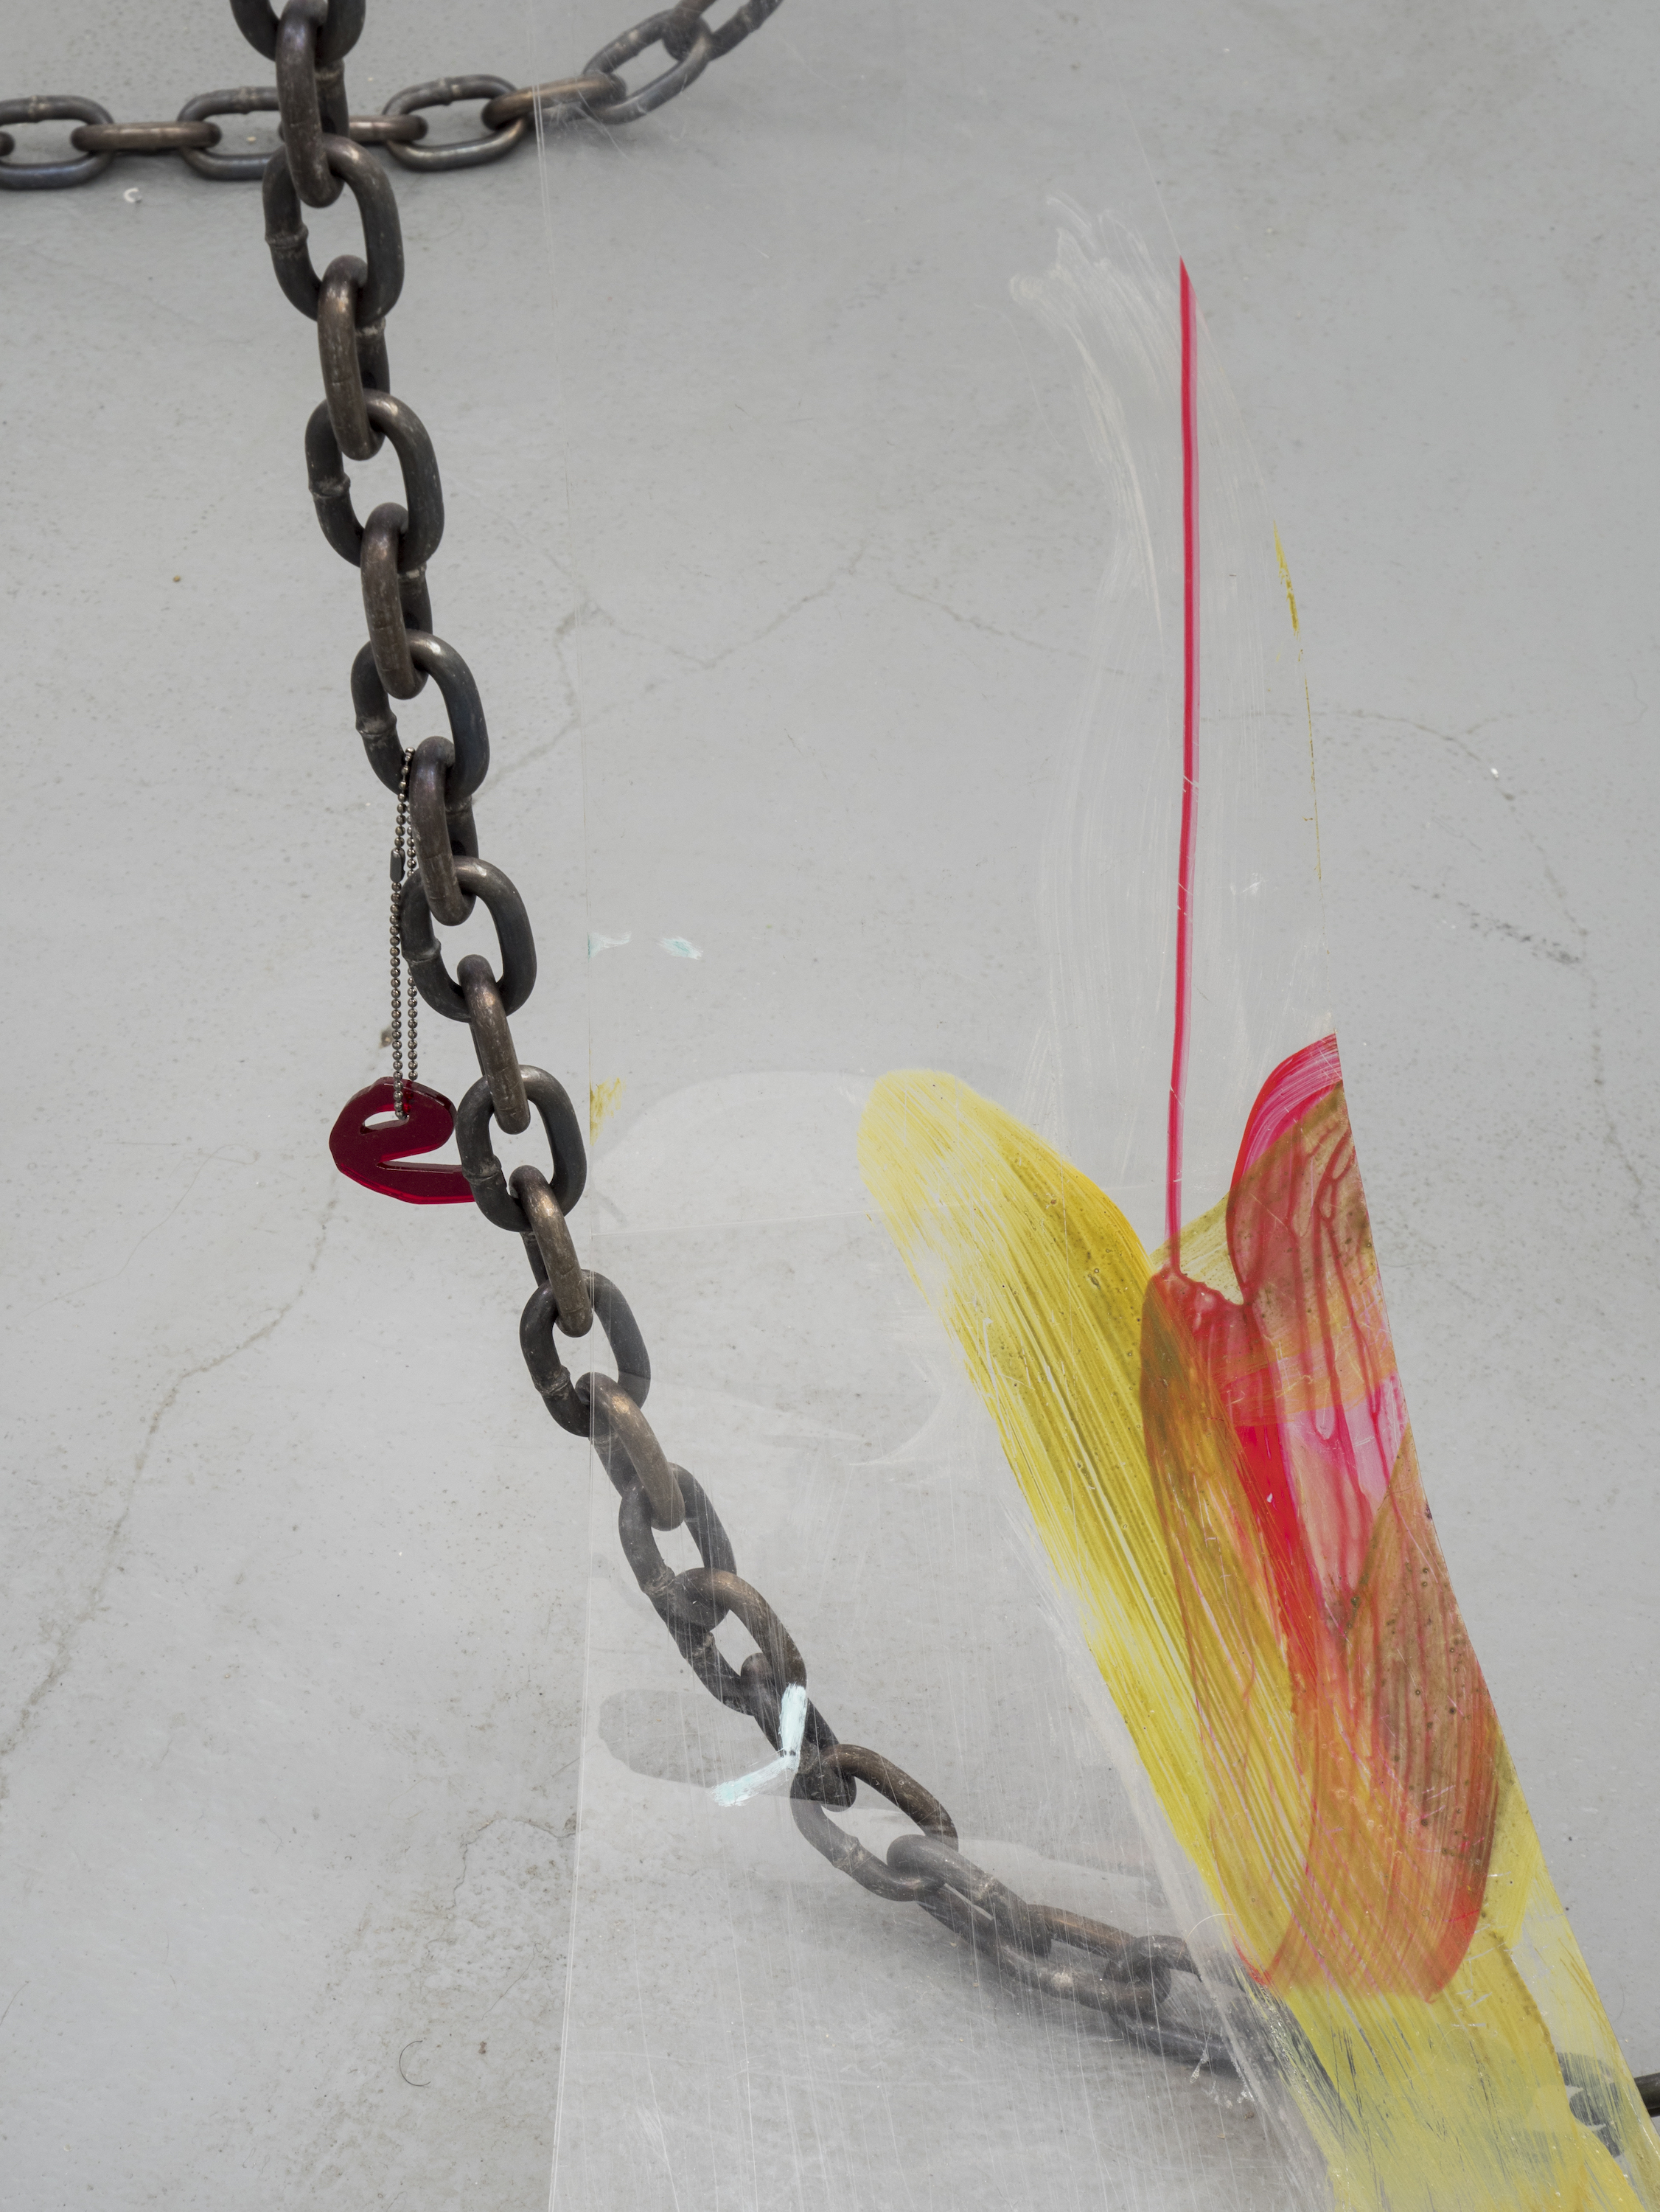 Raque Ford,  e (detail),  2017, acrylic paint on polypropelene, steel chain, and zip ties, 86 x 30 in